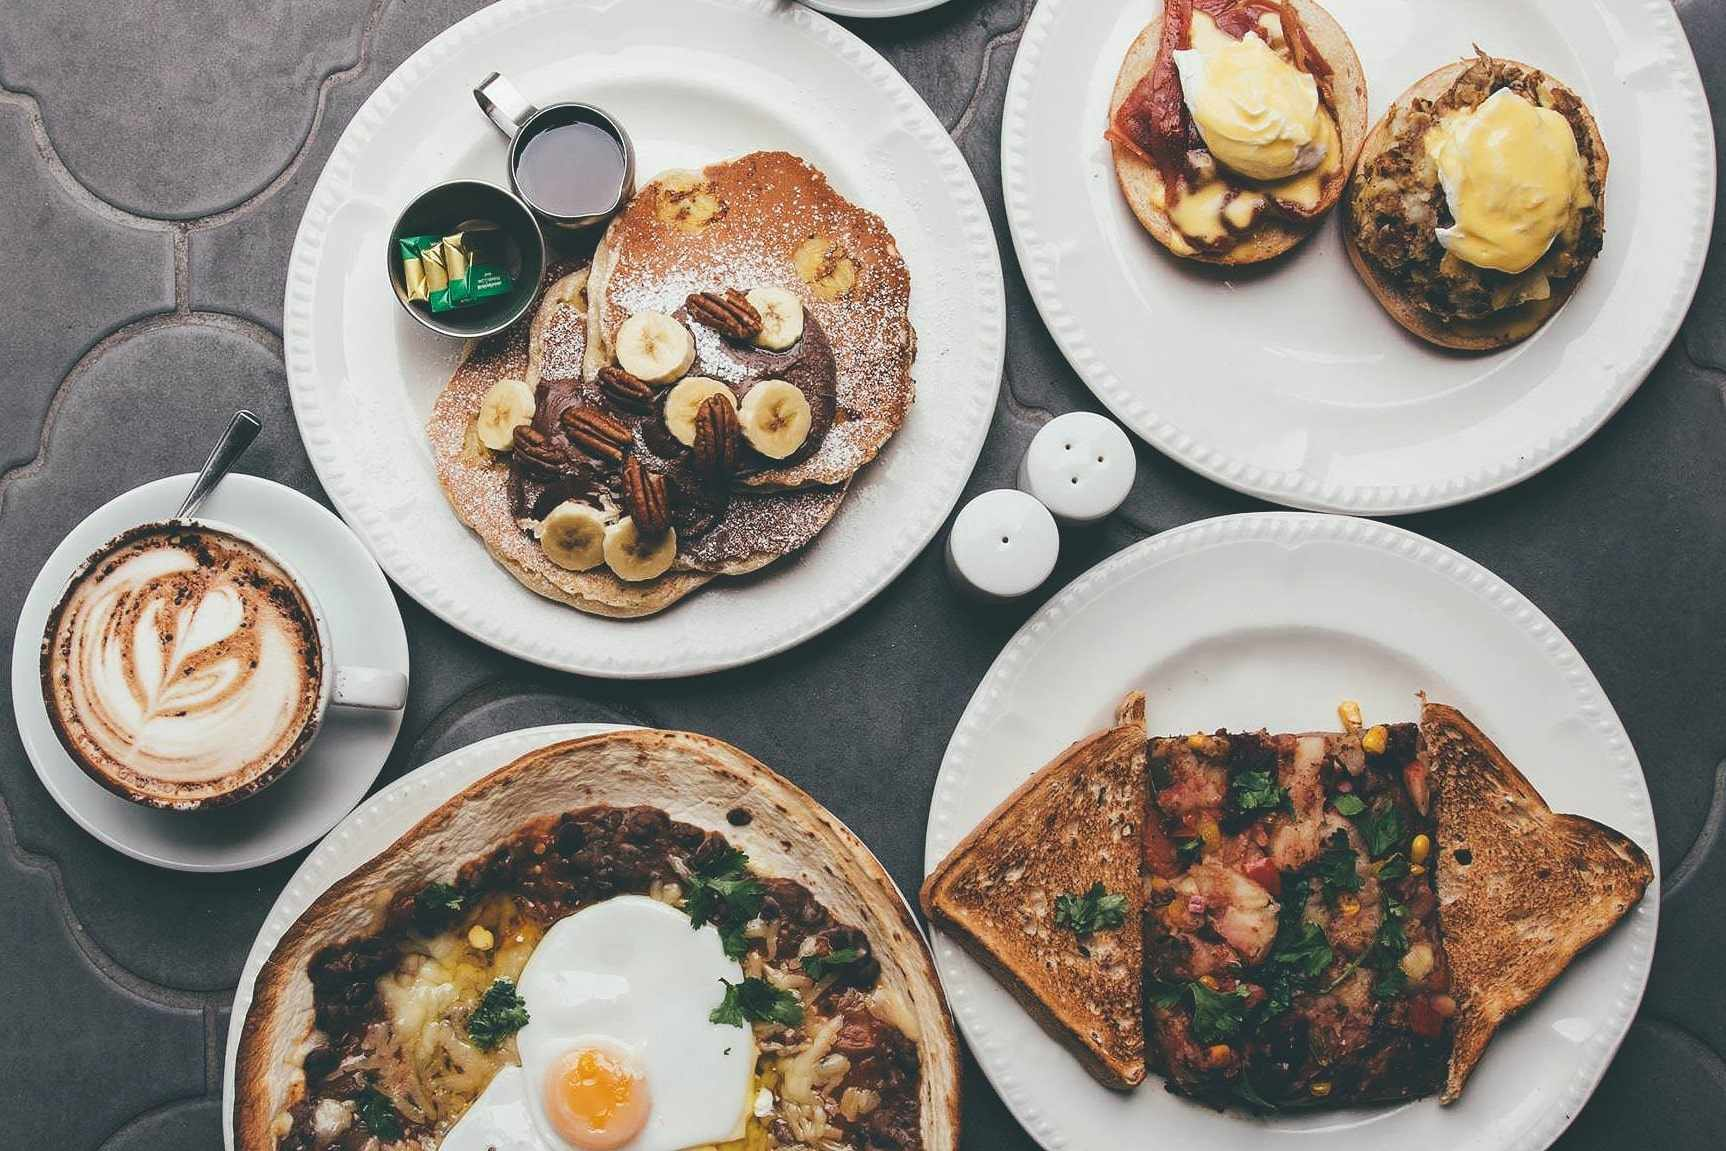 white-paper-plates-with-american-breakfast-food-at-moose-coffee